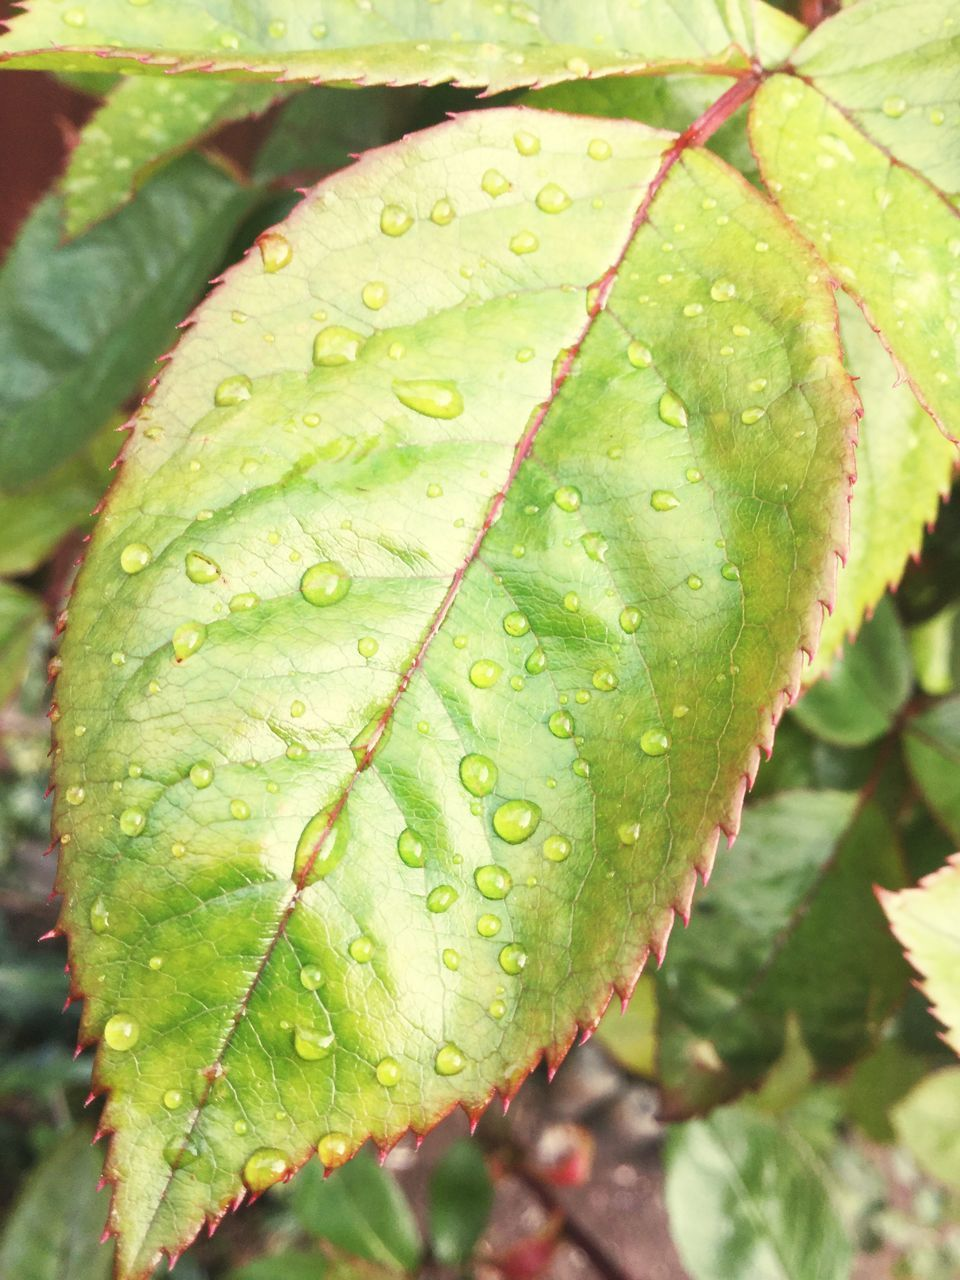 leaf, green color, nature, close-up, drop, growth, water, beauty in nature, day, no people, wet, plant, outdoors, freshness, fragility